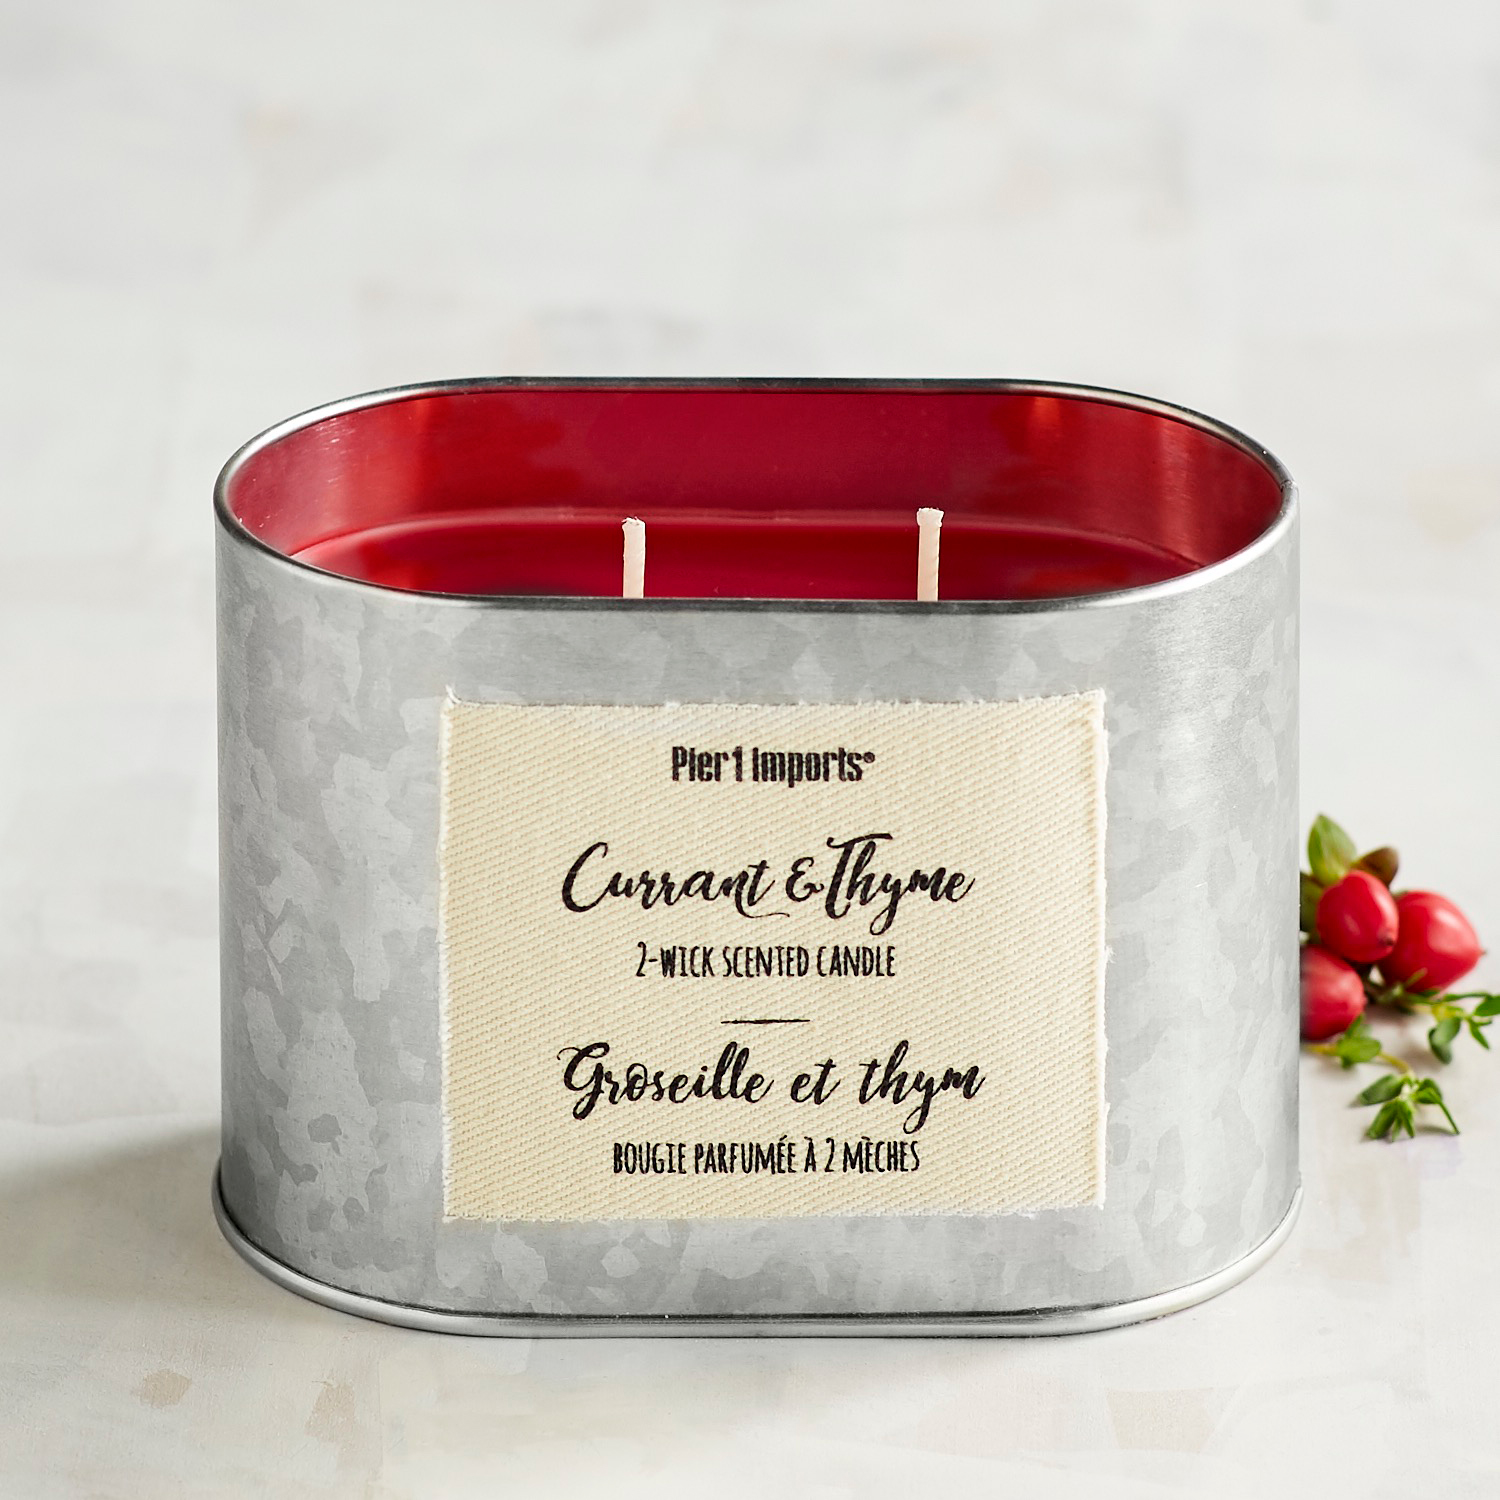 Currant & Thyme Filled 2-Wick Candle